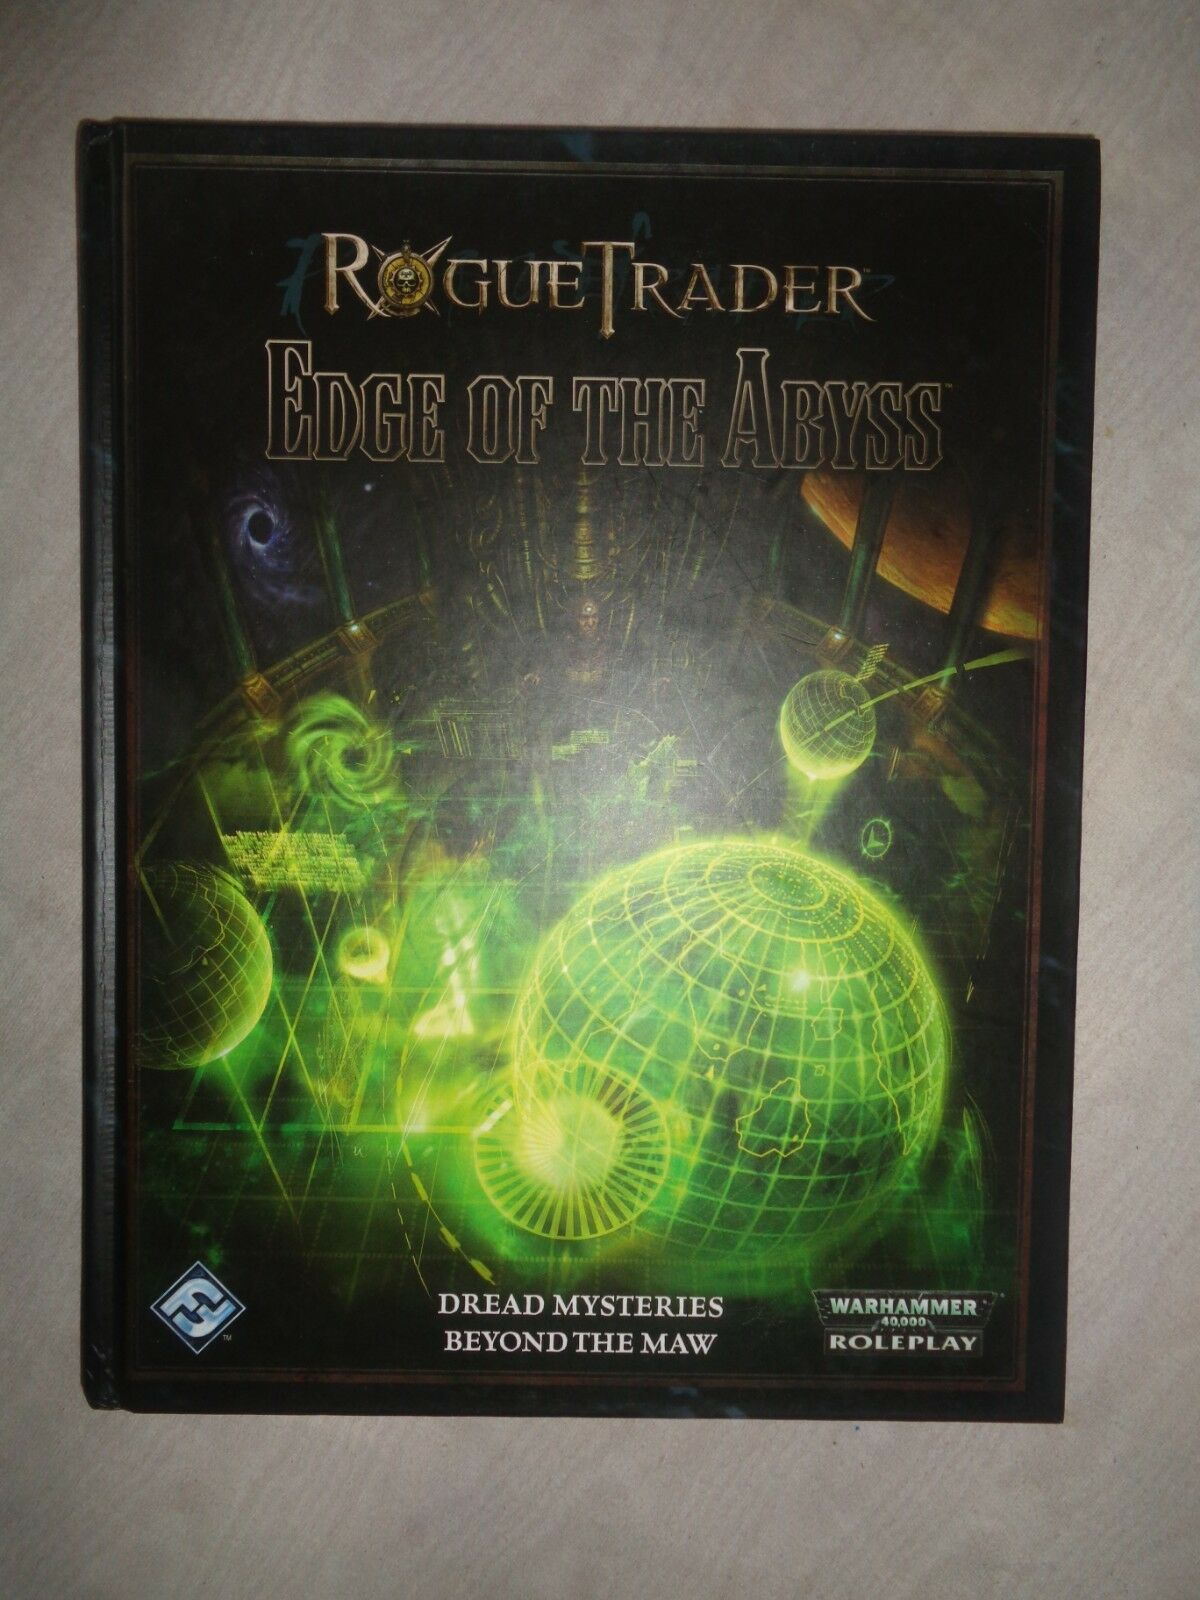 Rogue Trader Trader Trader  'Edge of the Abyss' - Warhammer 40k Role-play - Dark heresy etc b0dfbe